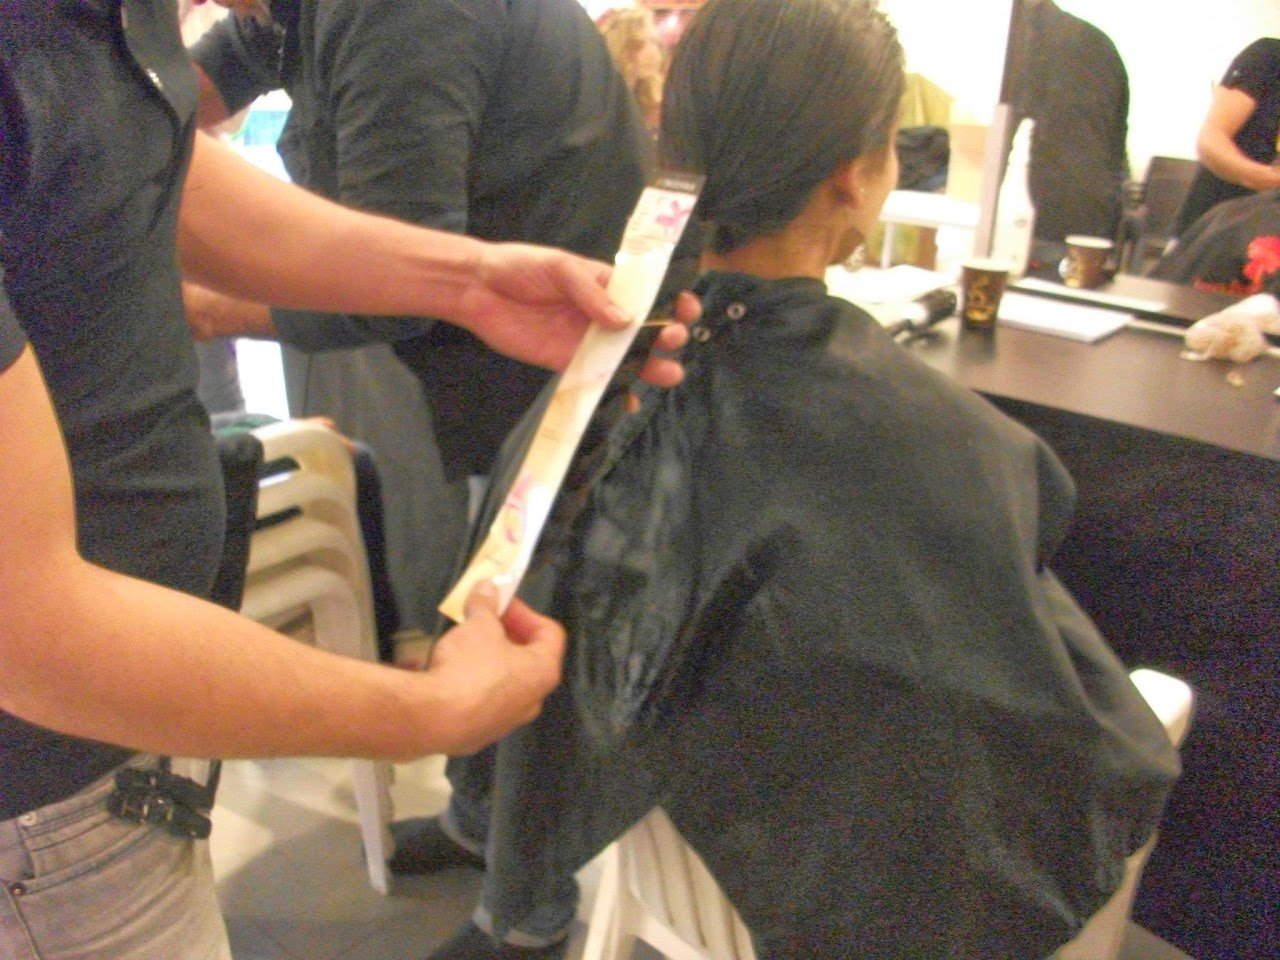 Donating hair for cancer patients 2014  - 1291632_539677572815207_1100407150_o.jpg